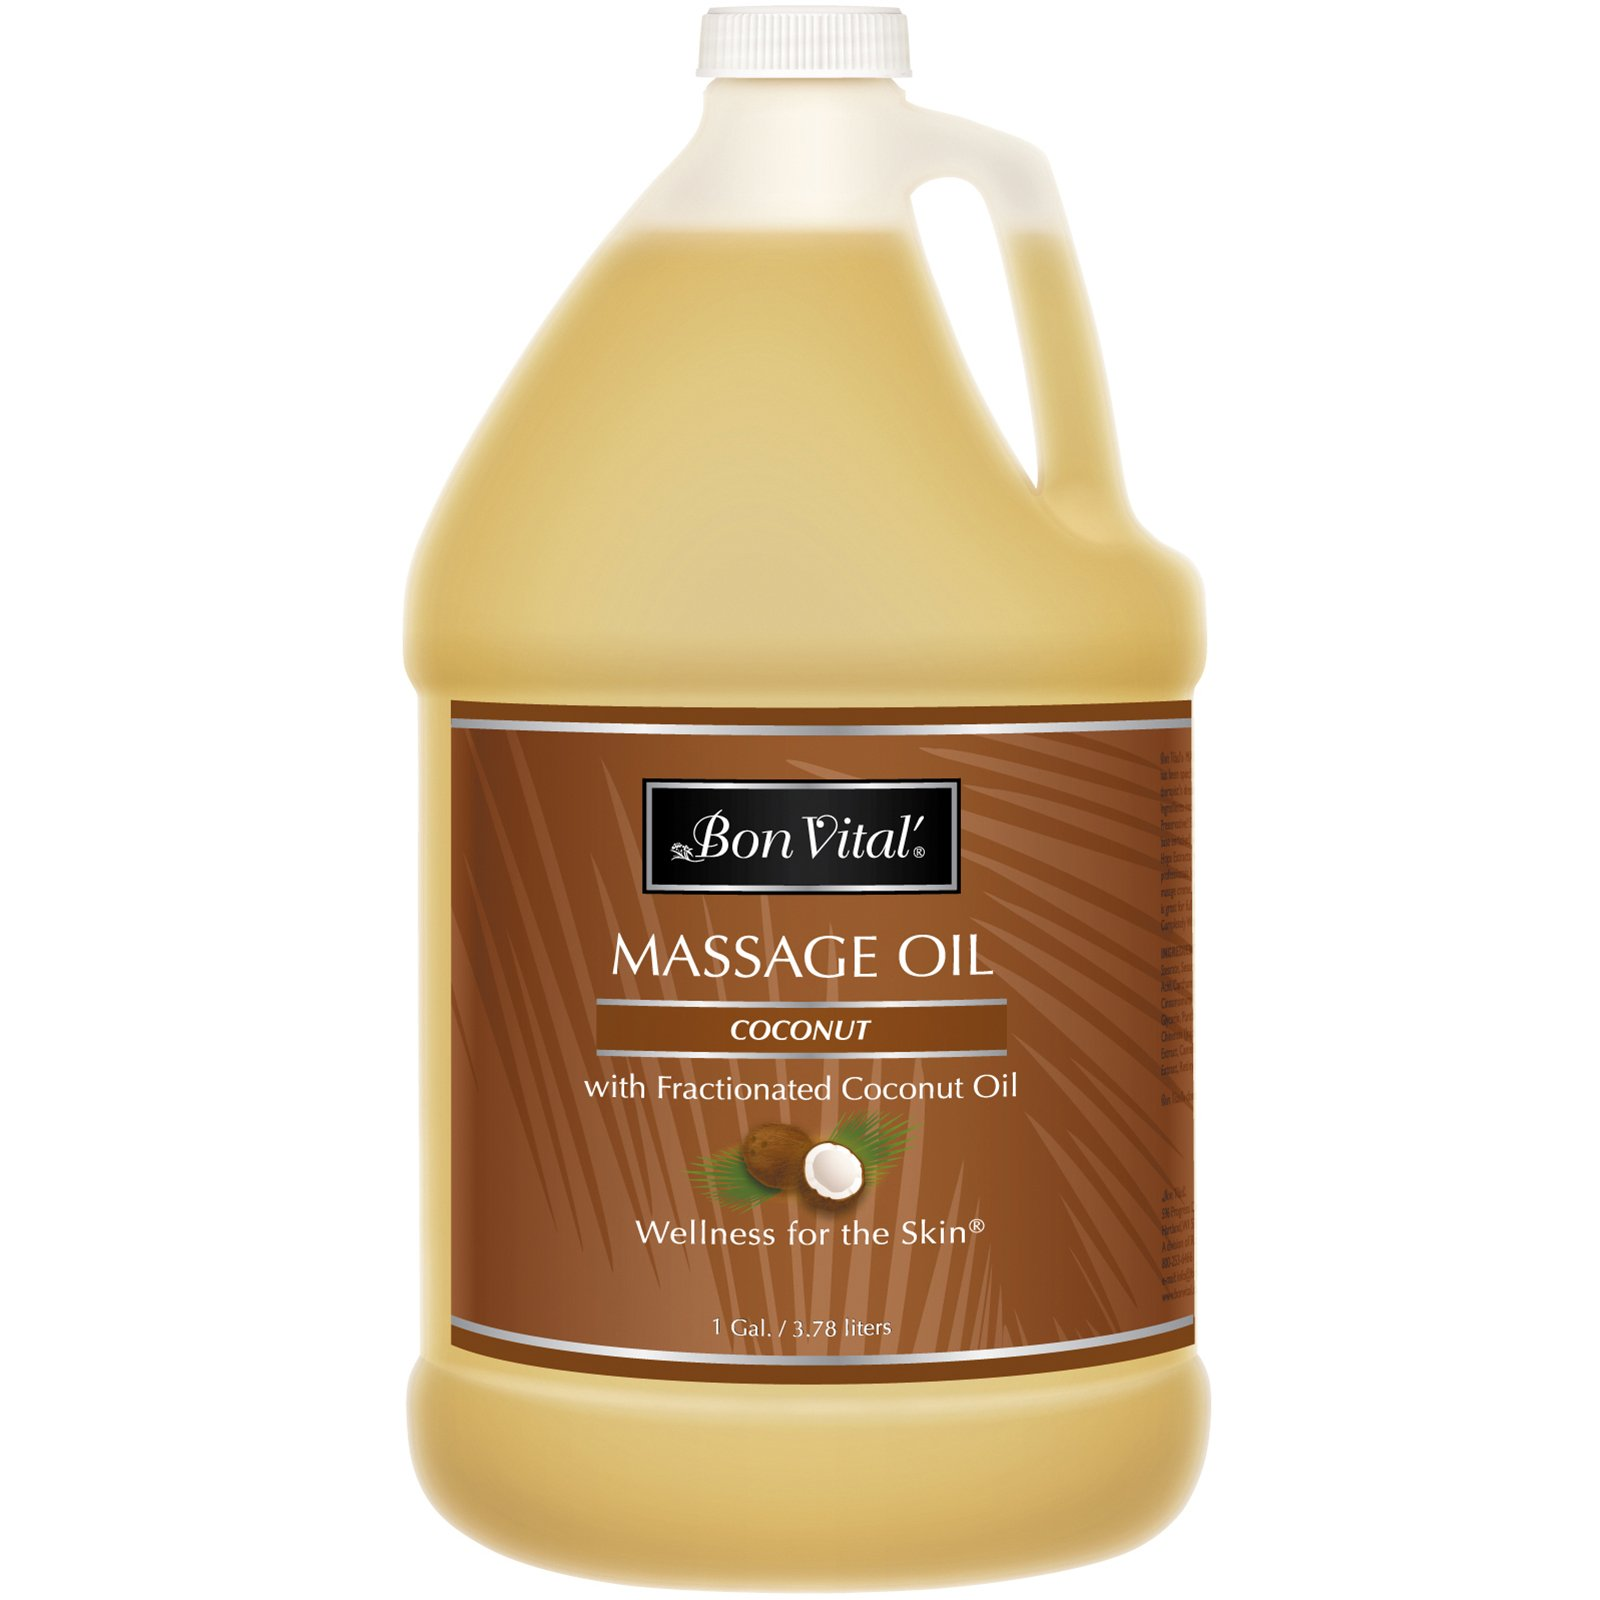 Bon Vital' Coconut Massage Oil Made with 100% Pure Fractionated Coconut Oil to Repair Dry Skin, Used by Massage Therapists and At-Home Use for Therapeutic Massages and Relaxation, 1 Gallon Bottle